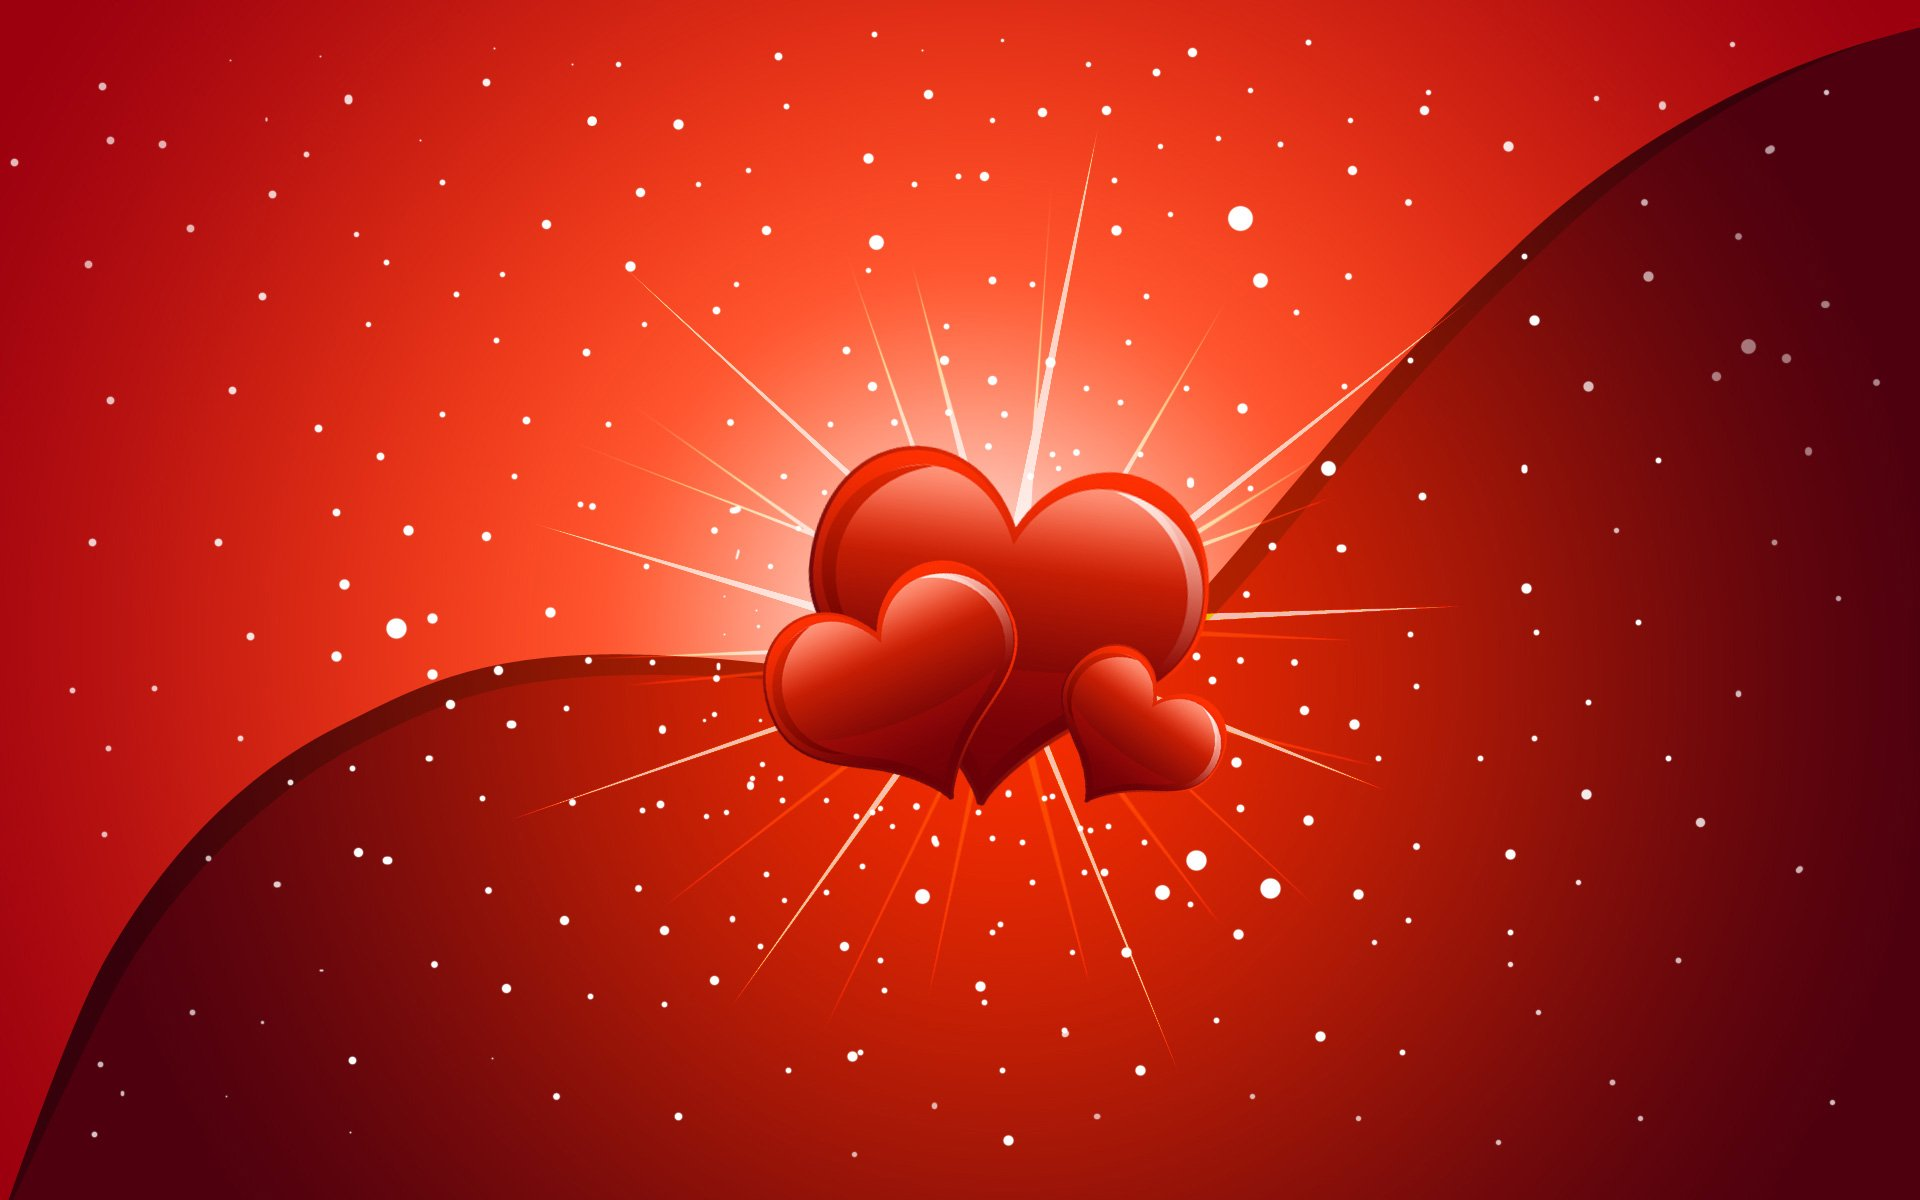 day wallpaper romantic valentines day hd wallpapers romantic 1920x1200